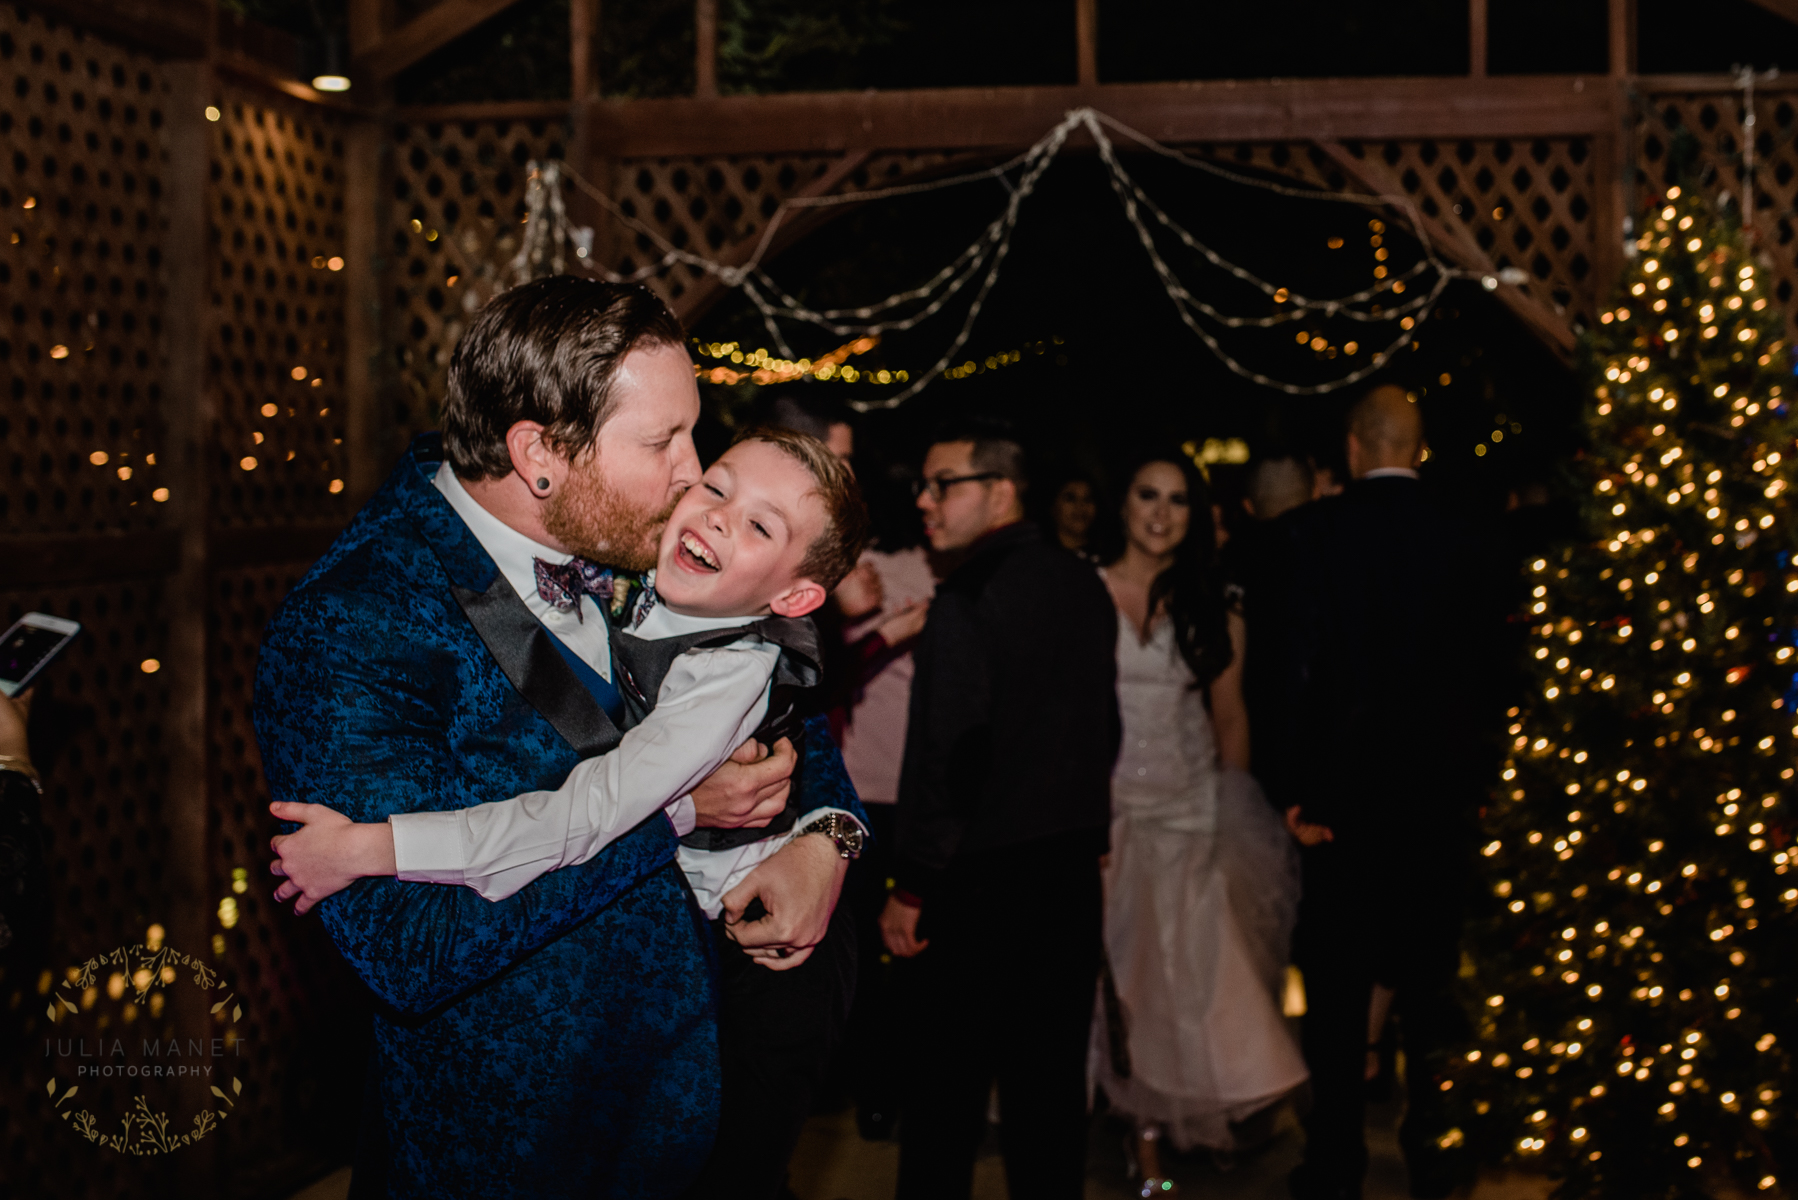 His son caught the garter!